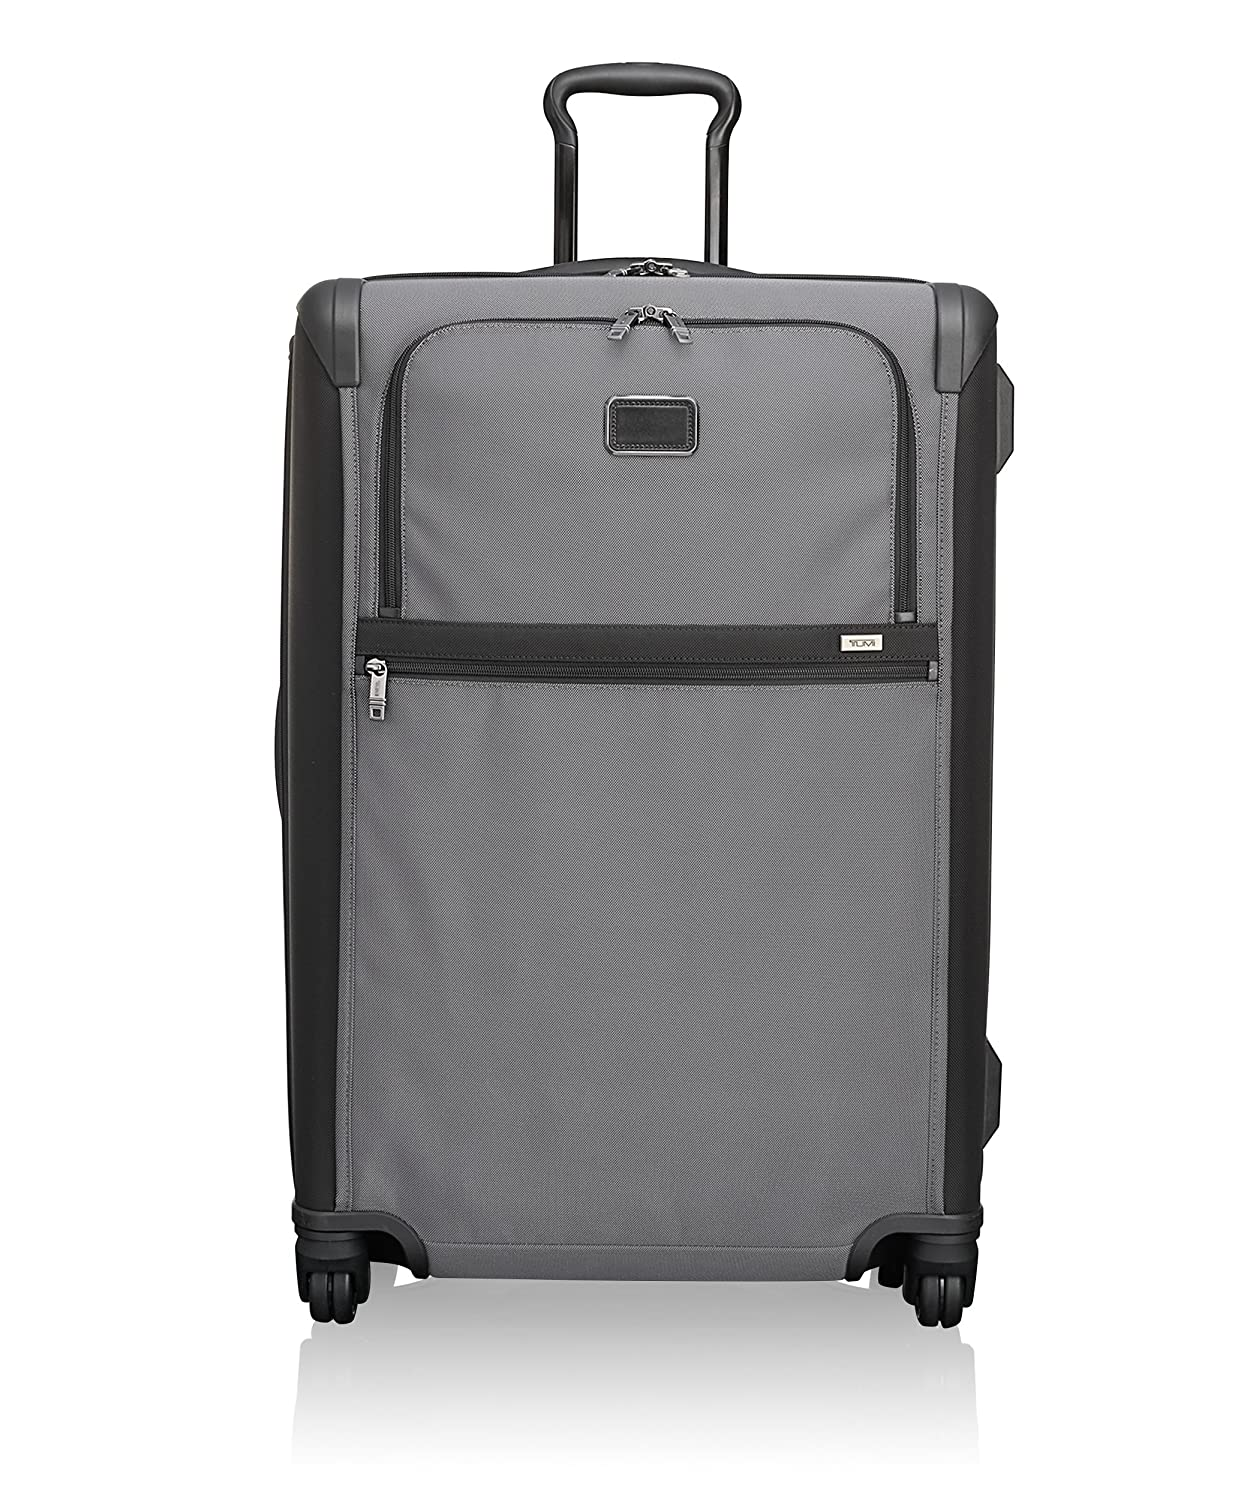 2f3dc3fed3b4 Tumi Alpha 2 Medium Trip Expandable 4 Wheeled Packing Case Suitcase-Rolling  Luggage for Men and Women, Pewter